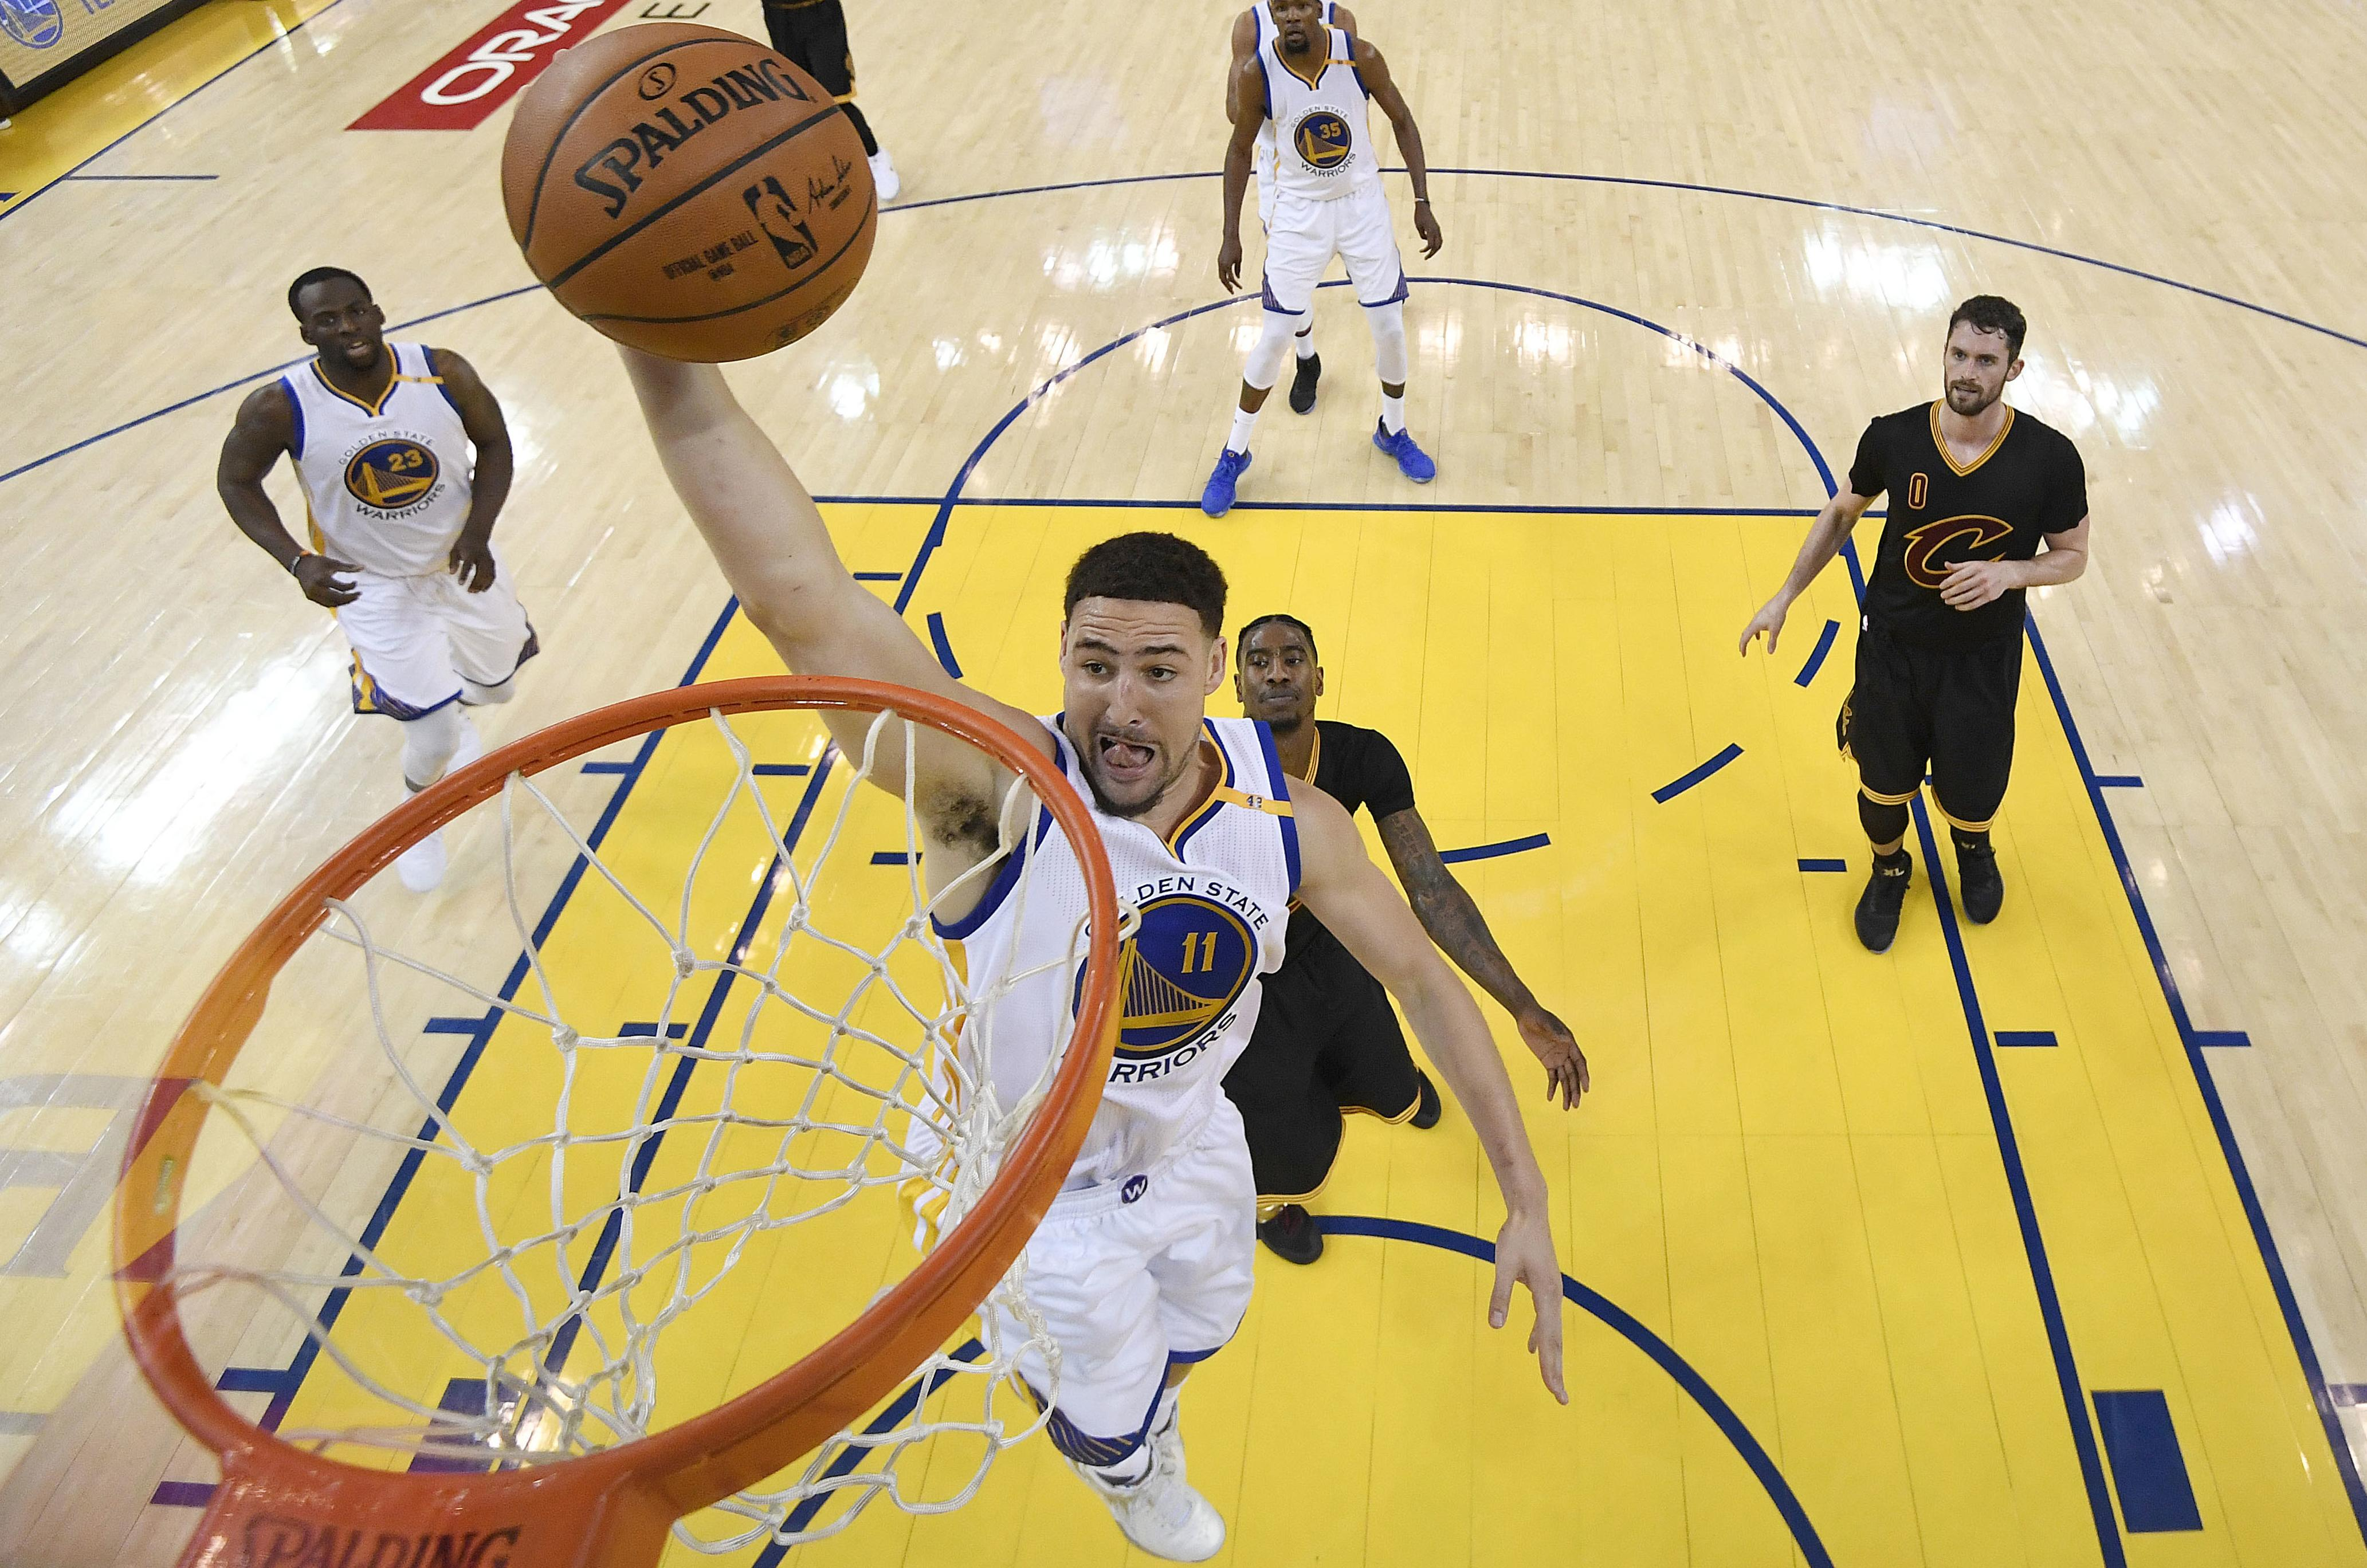 edd395d2d Golden State Warriors guard Klay Thompson goes to the rim against the  Cleveland Cavaliers during the